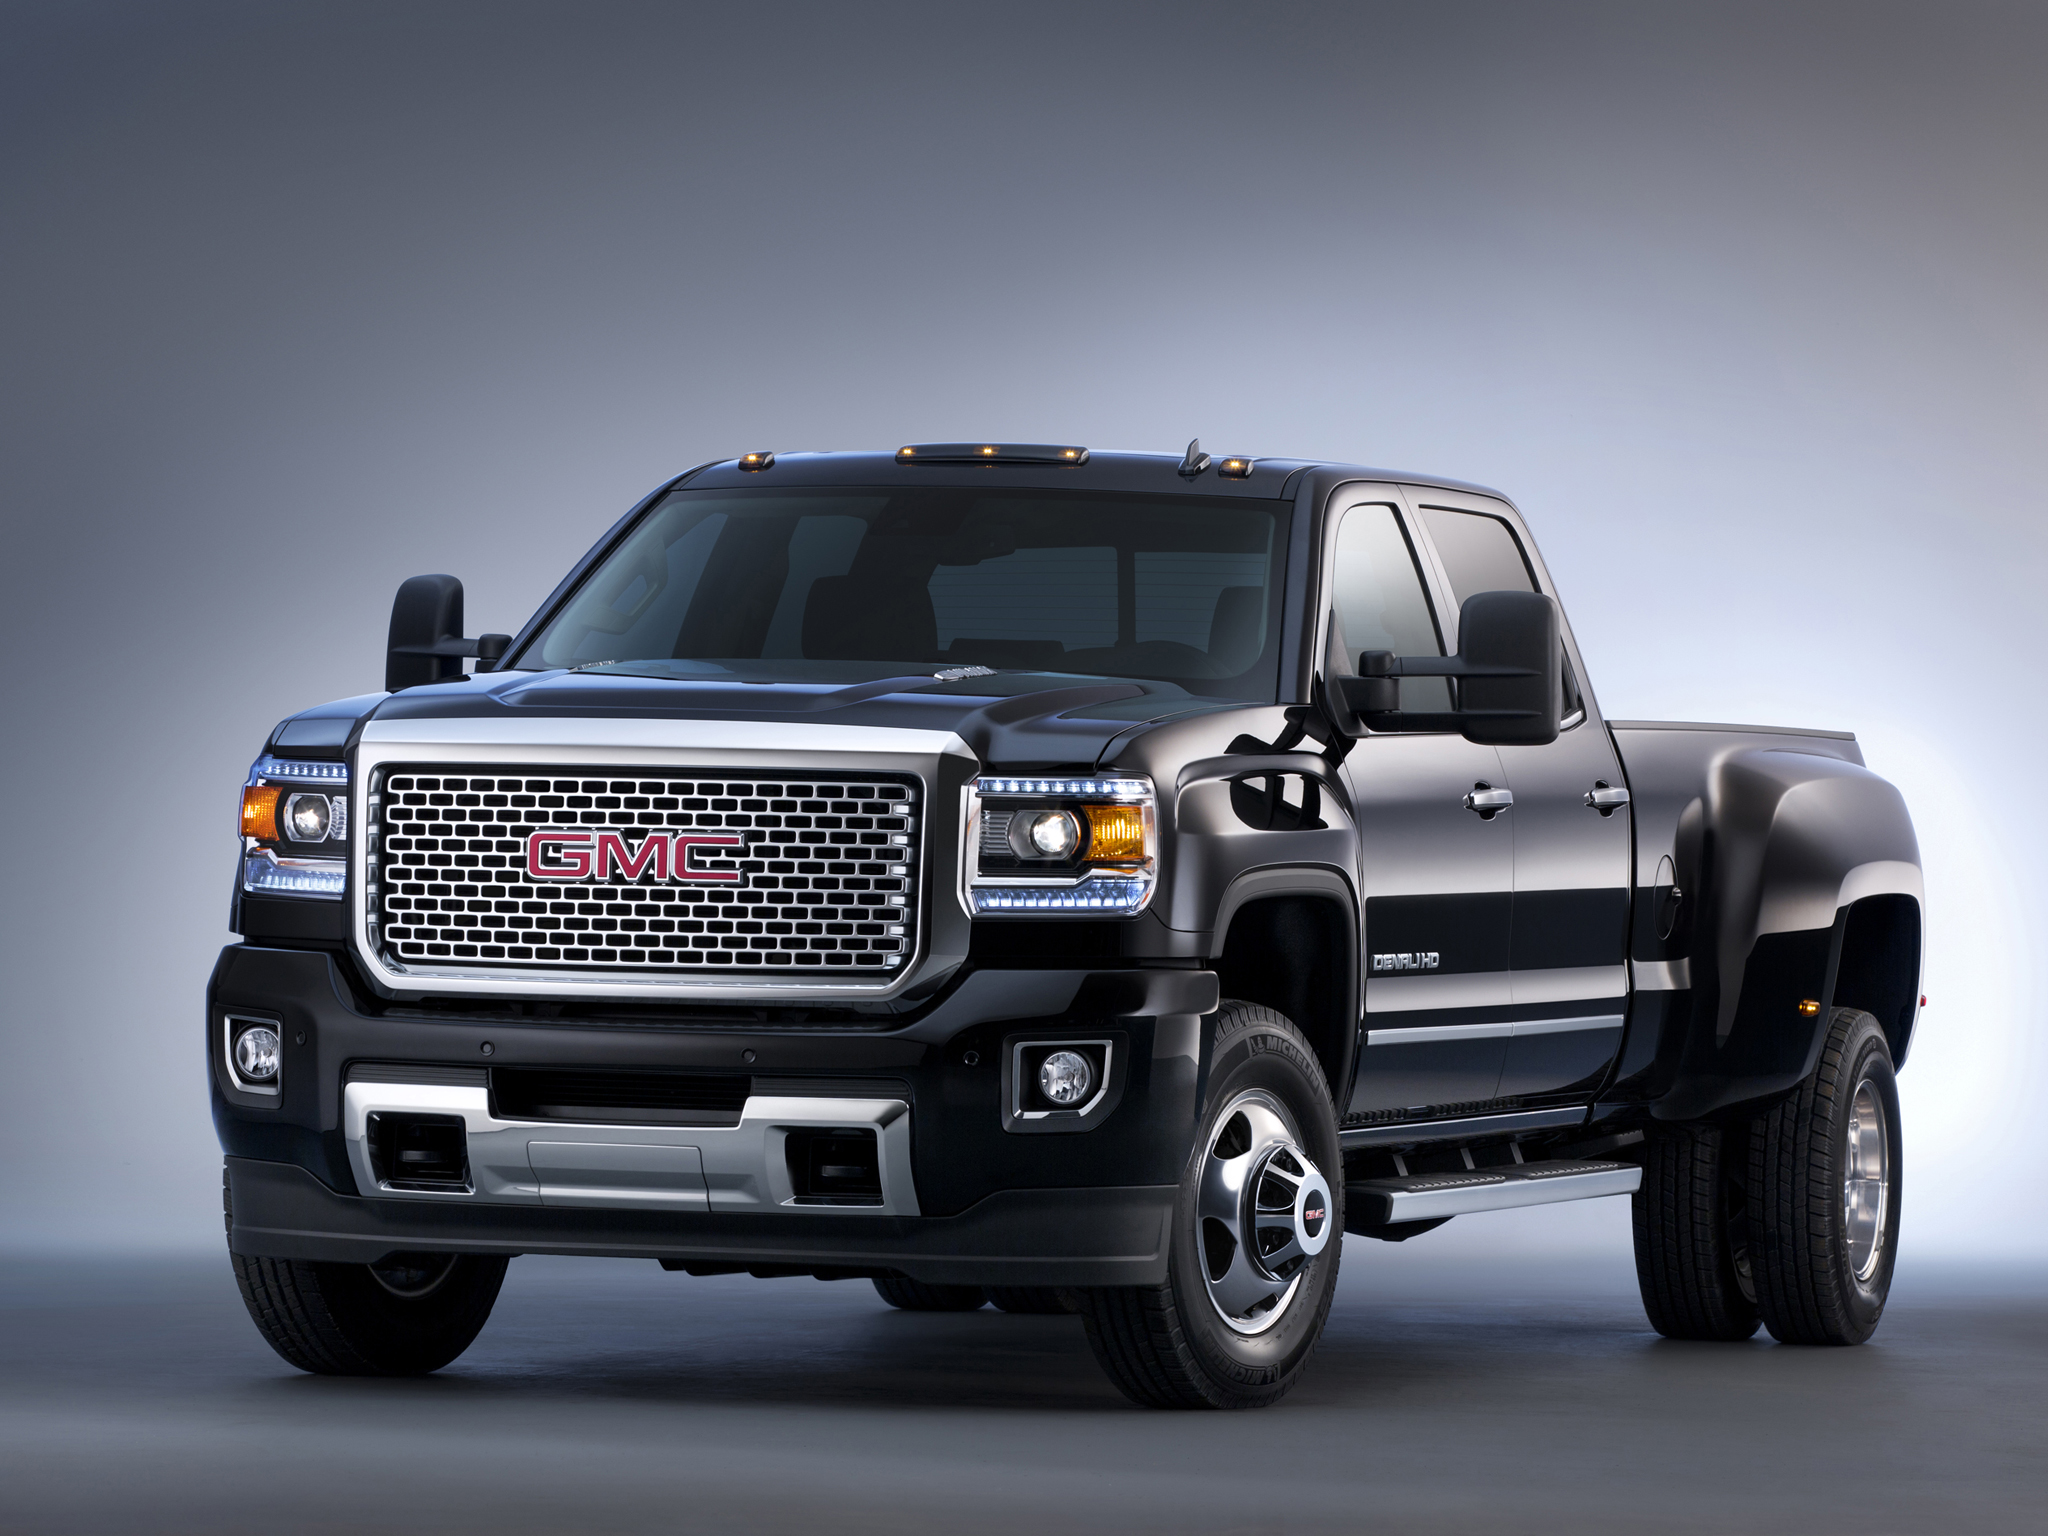 2014 GMC Sierra 3500hd #2